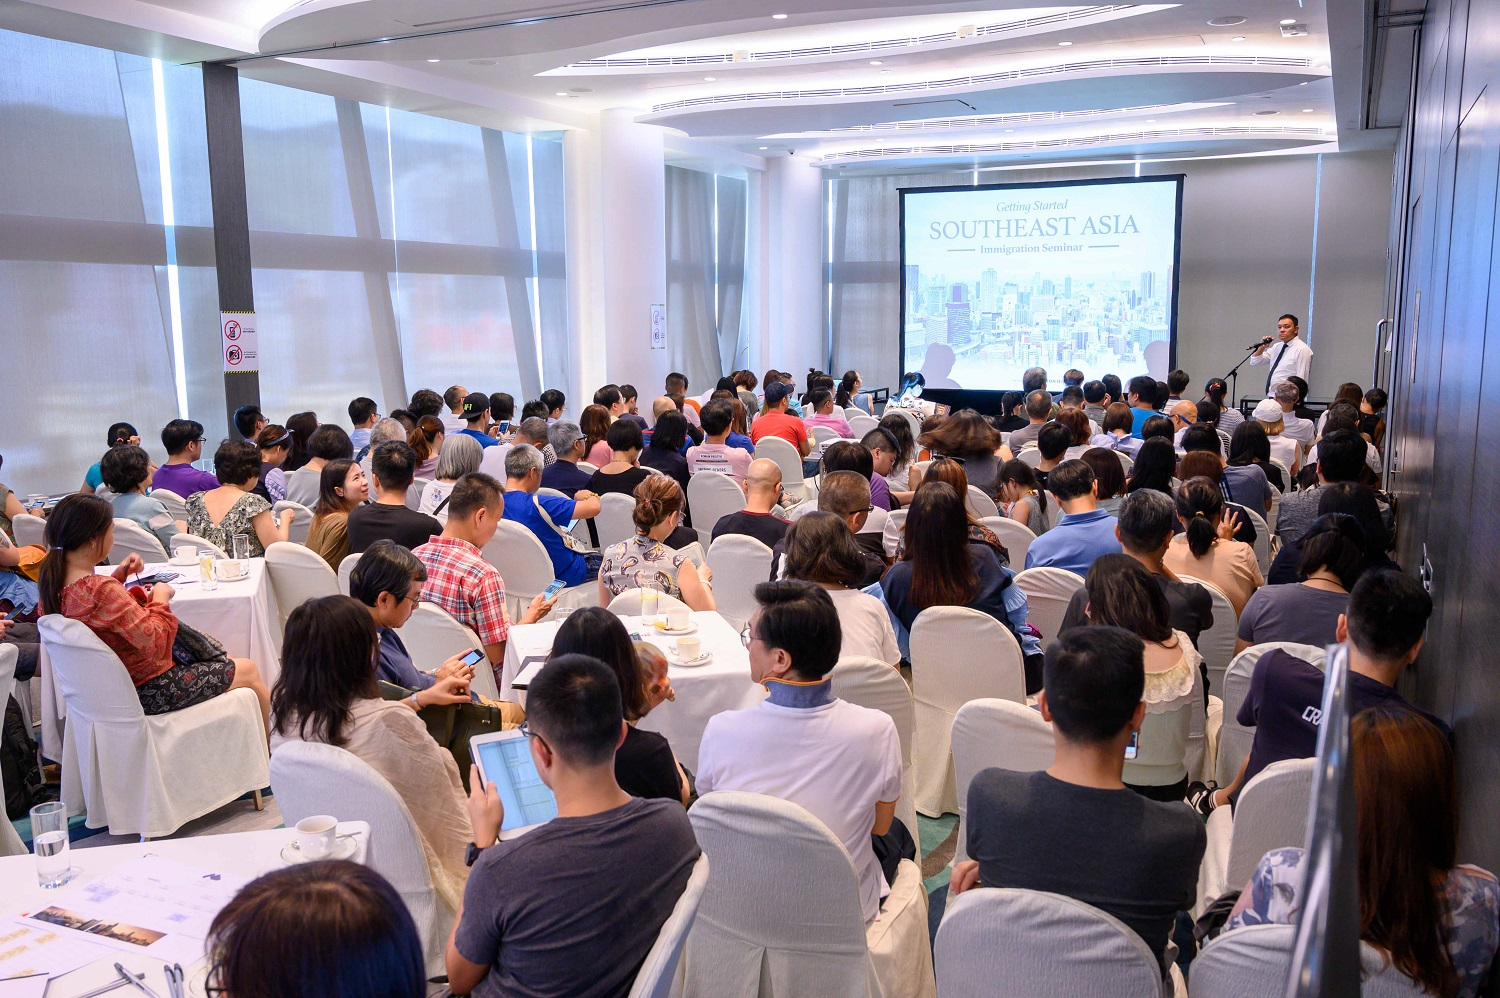 Immigration inquiry rate to Southeast Asia spursGolden Emperor Properties' exclusive seminar attracts nearly 1,000 participants